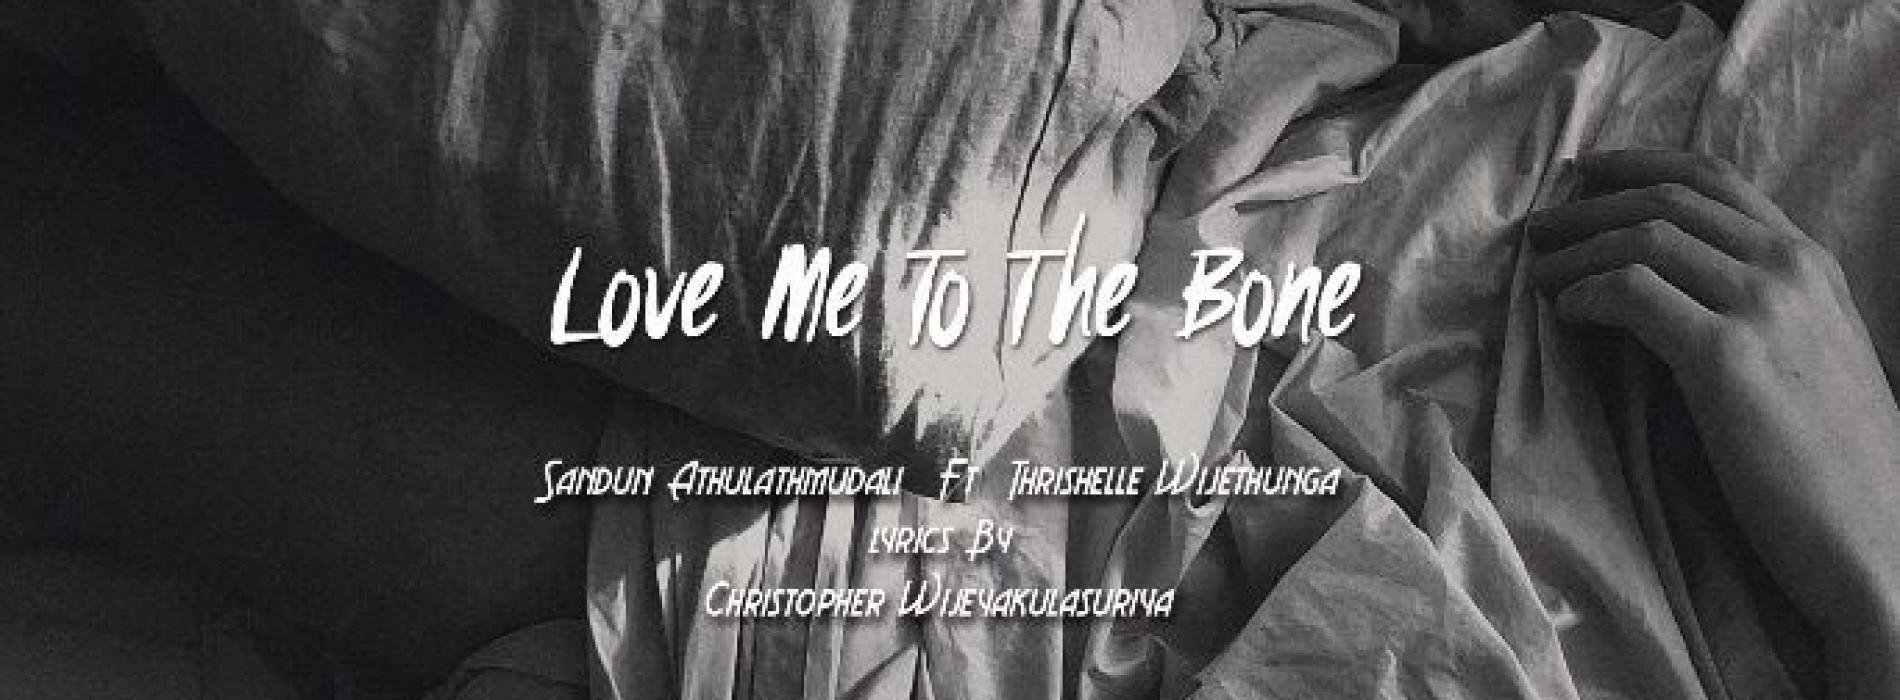 "Sandun Athulathmudali Ft Thrishelle Wijethunga – Love Me To The Bone ""Kiss Me Hard When We Fight"""